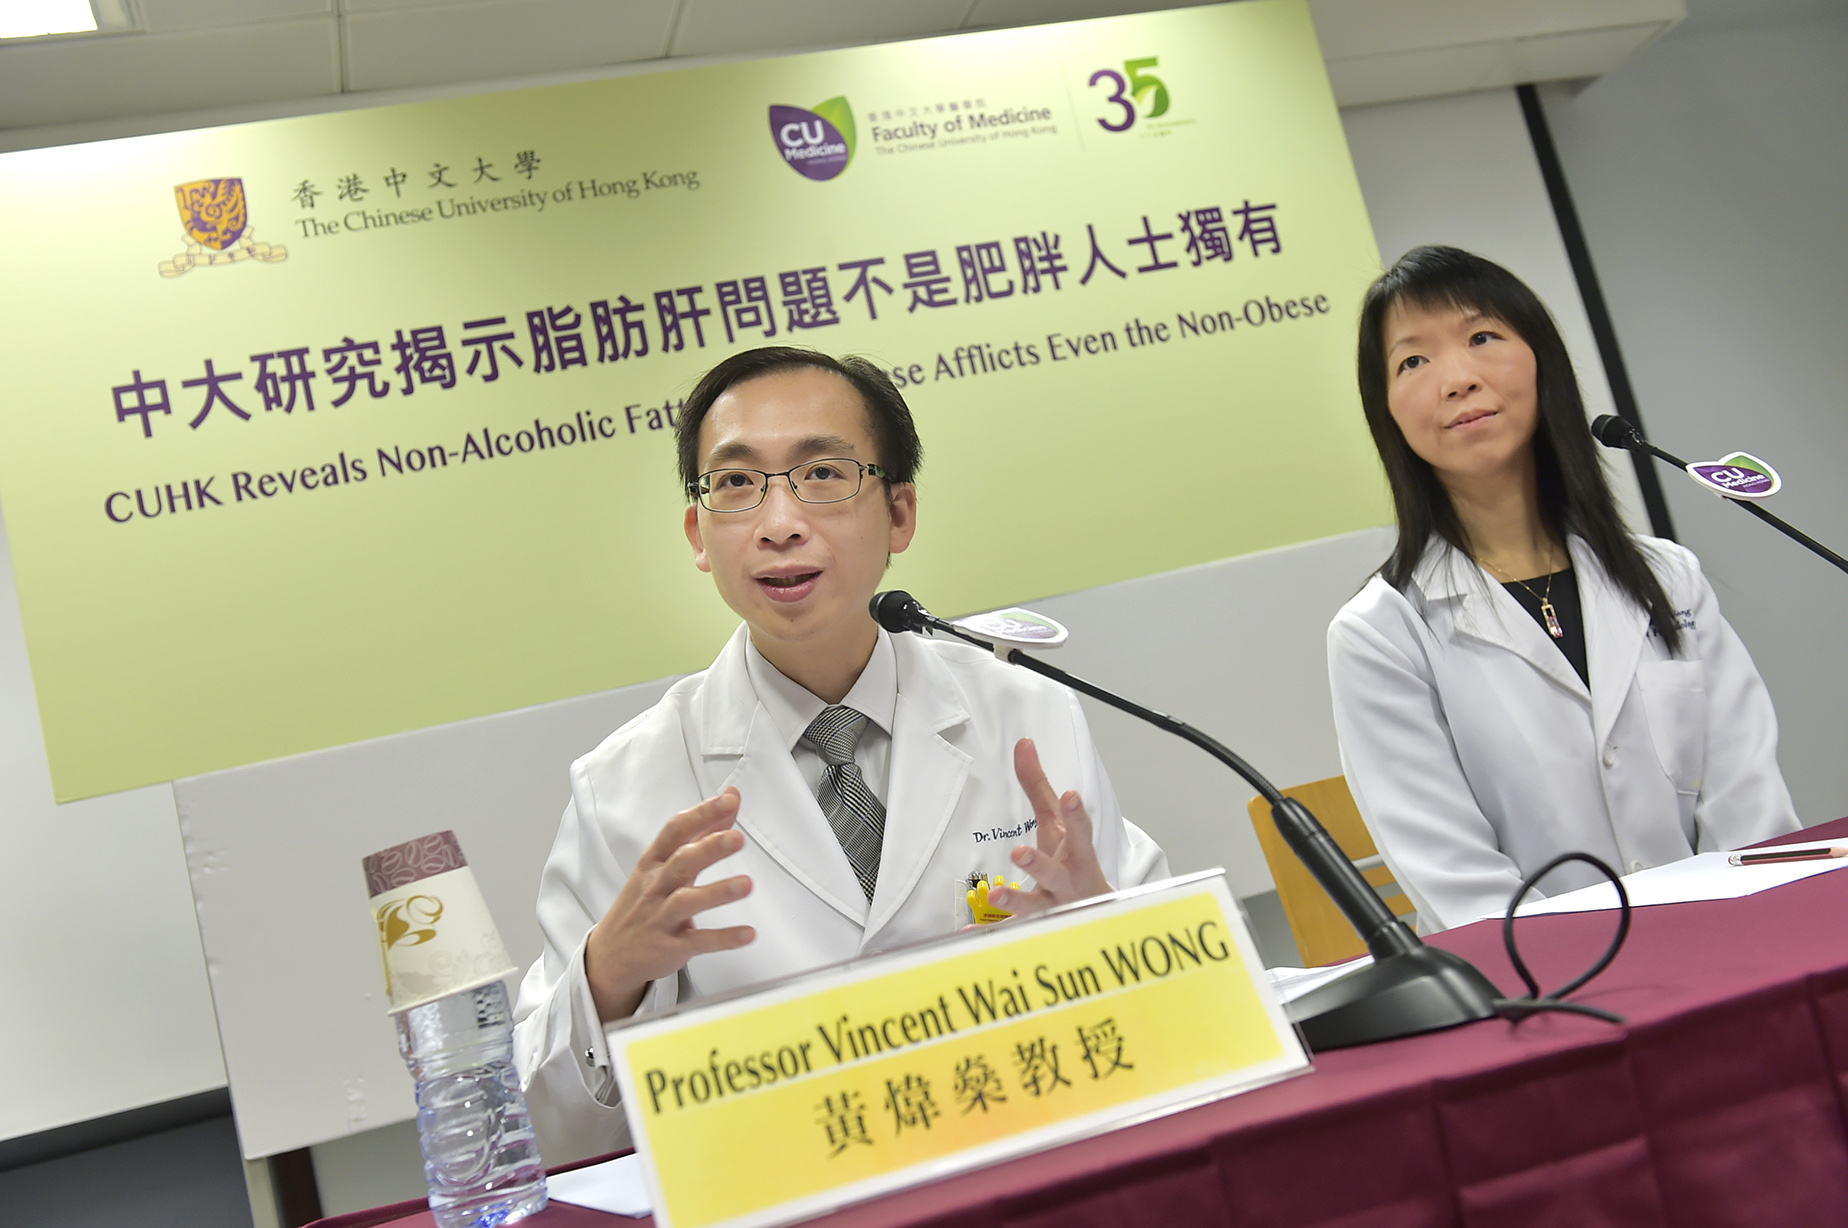 Studies conducted by CUHK Faculty of Medicine reveal that 1 out of 5 non-obese subjects suffer from non-alcoholic fatty liver disease. Some cases may even develop severe liver fibrosis. (Left) Prof. Vincent WONG and Prof. Grace WONG, Division of Gastroenterology and Hepatology, Department of Medicine and Therapeutics.